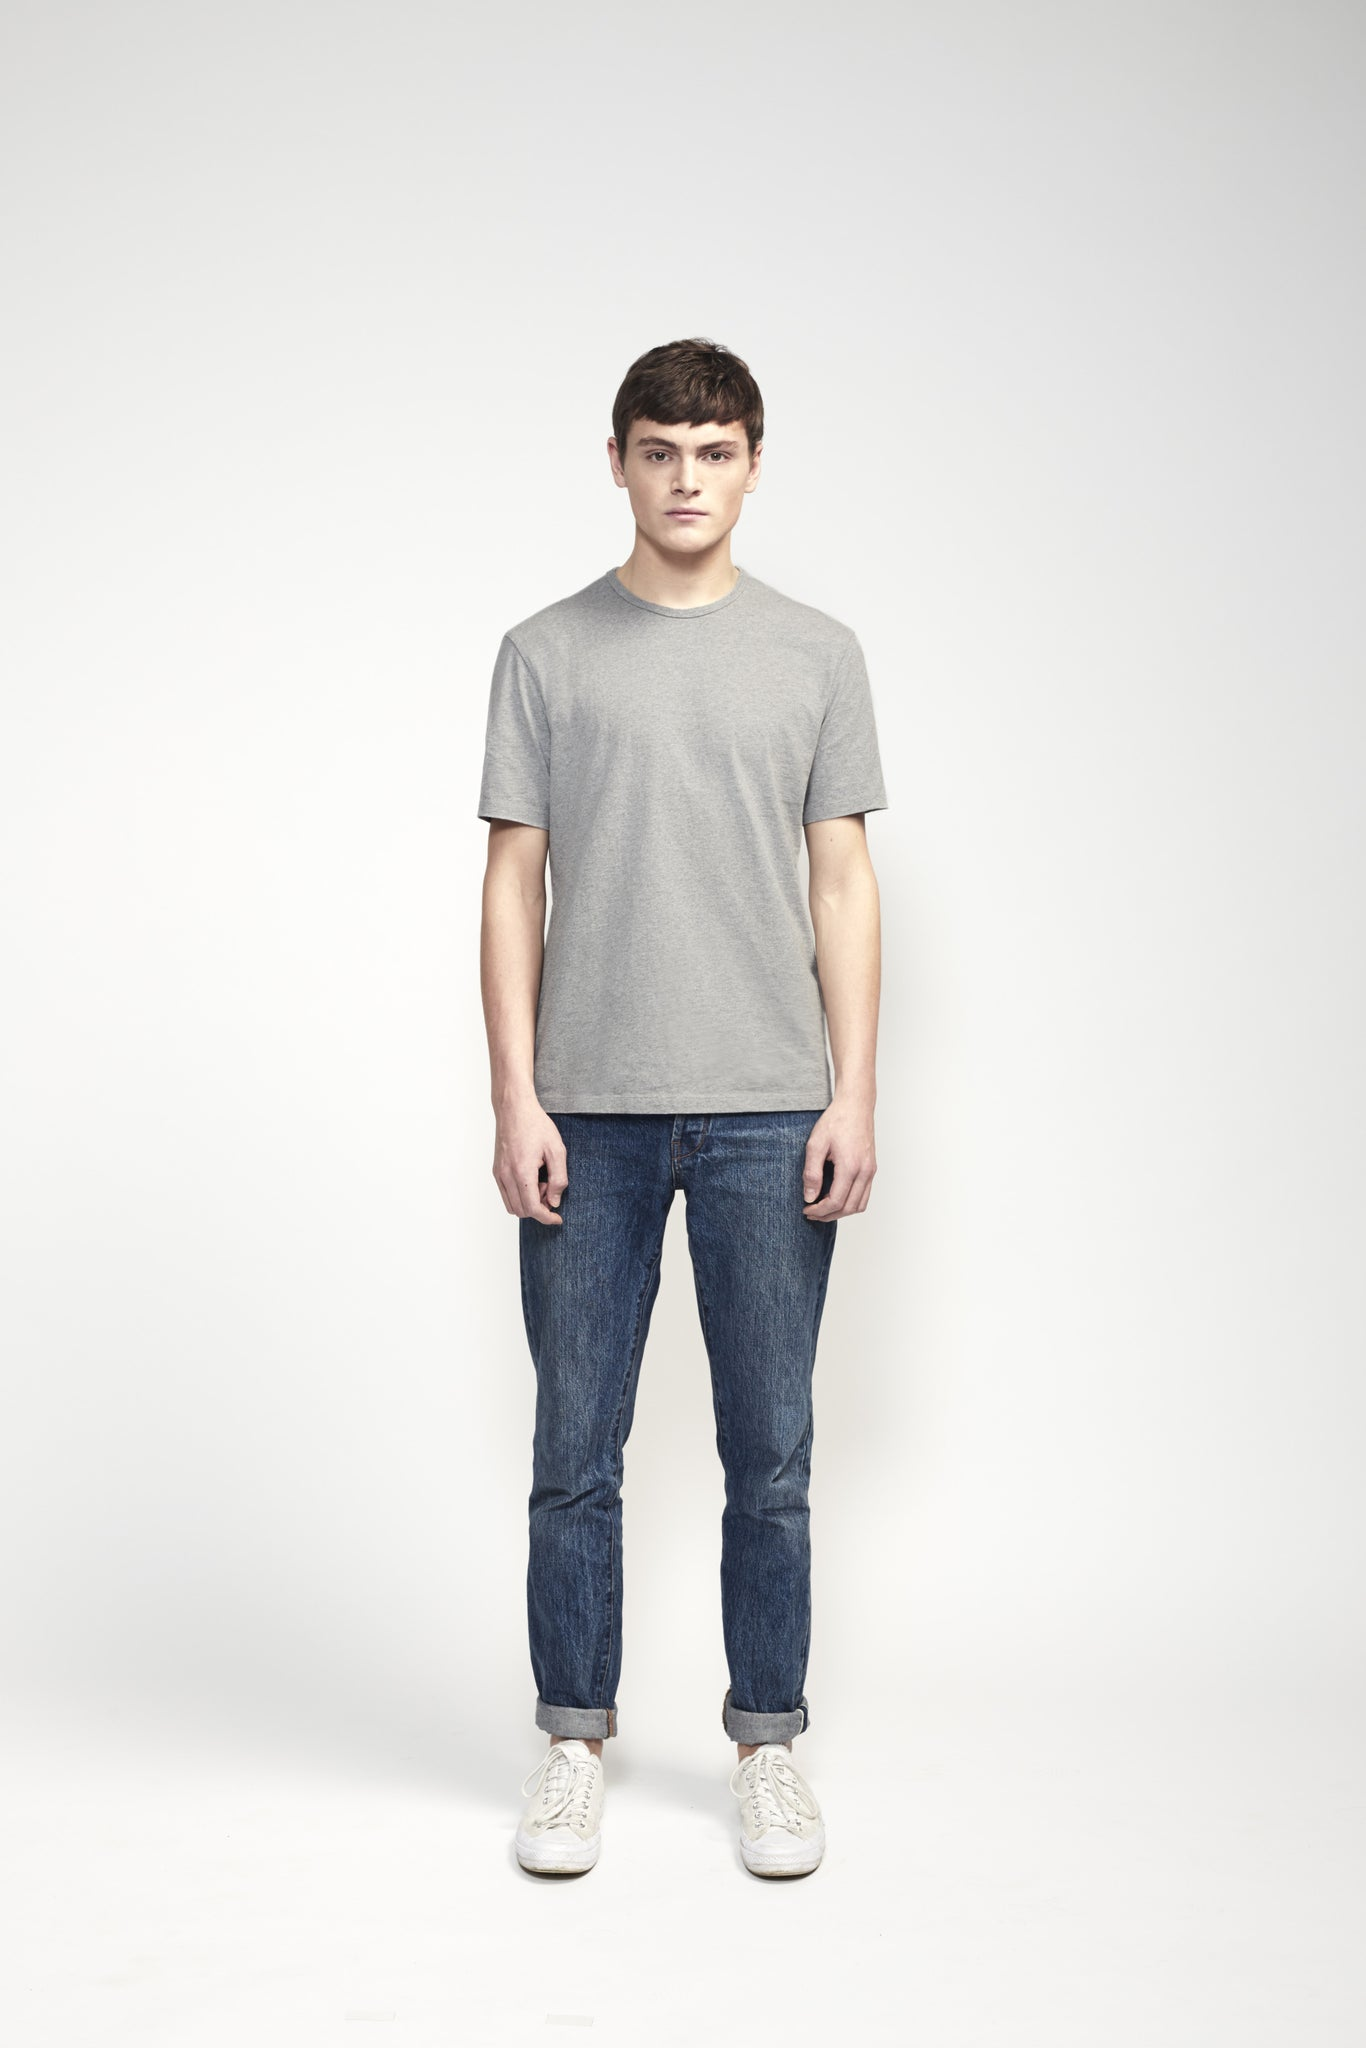 T-Shirt 180 GSM in Grey made from organic cotton - Front Men